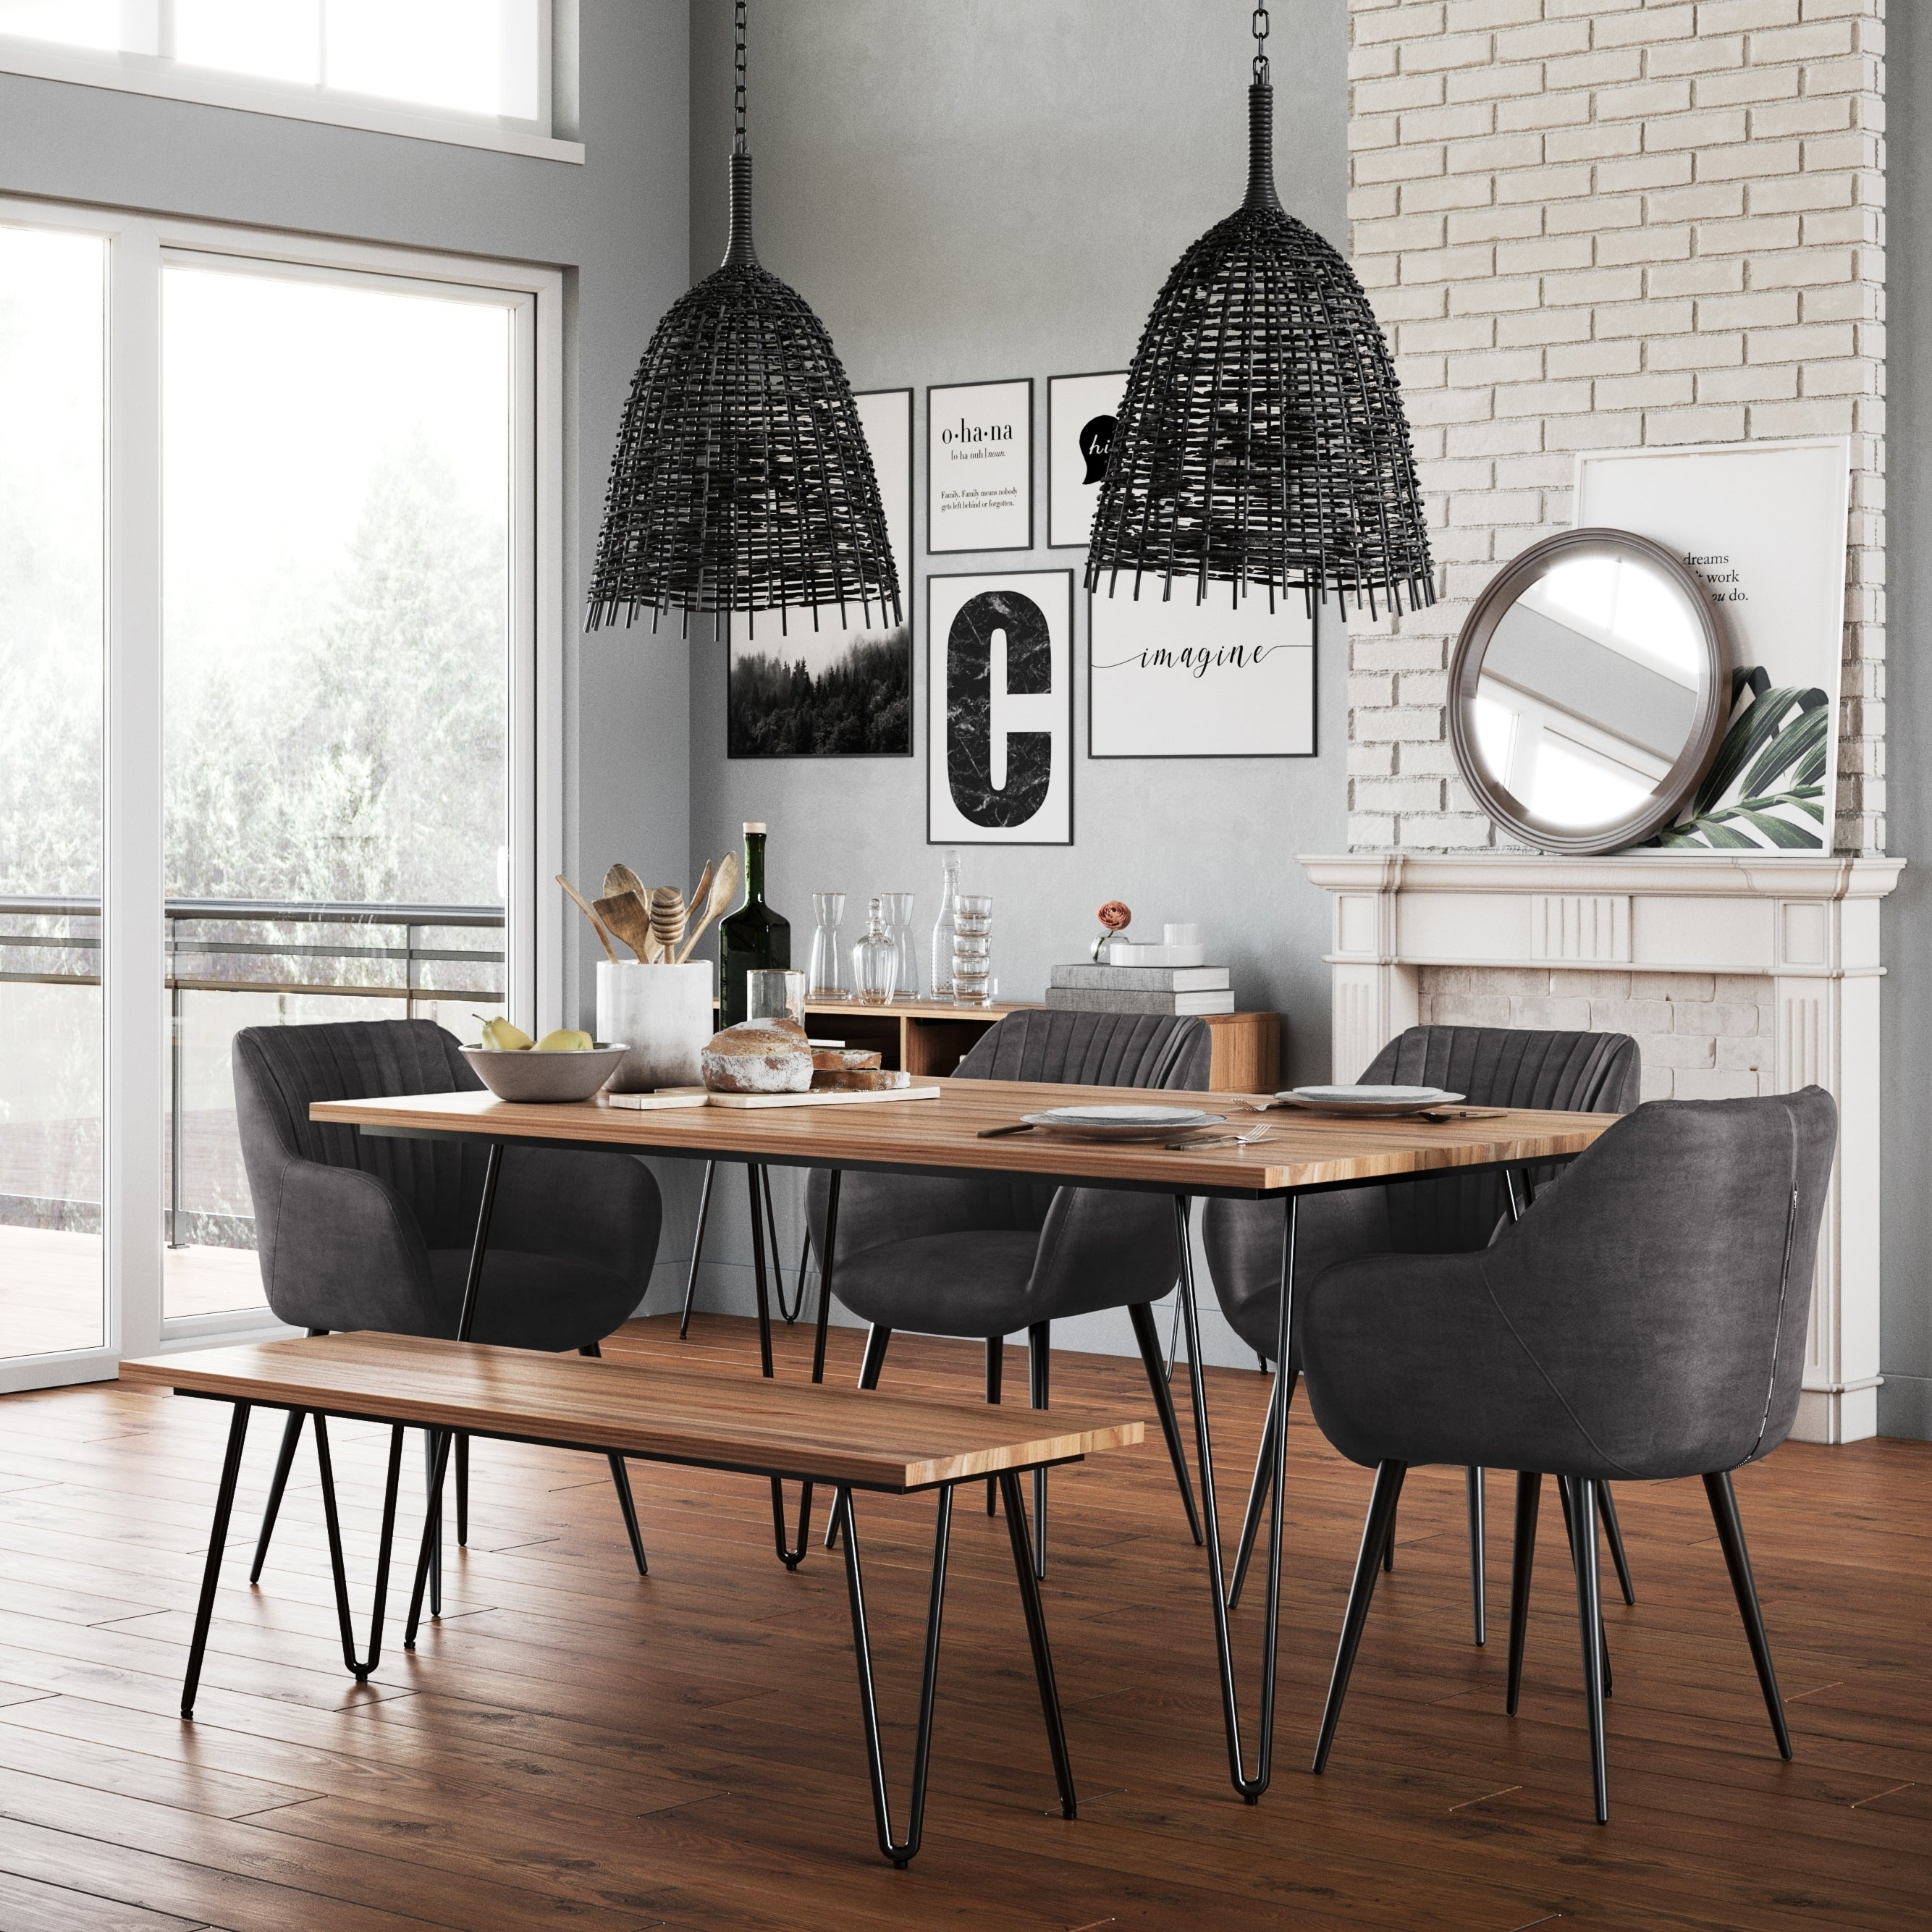 Cadence Mid Century Modern 6 Pc Dining Set With Bench 4 Upholstered Chairs In Faux Leather